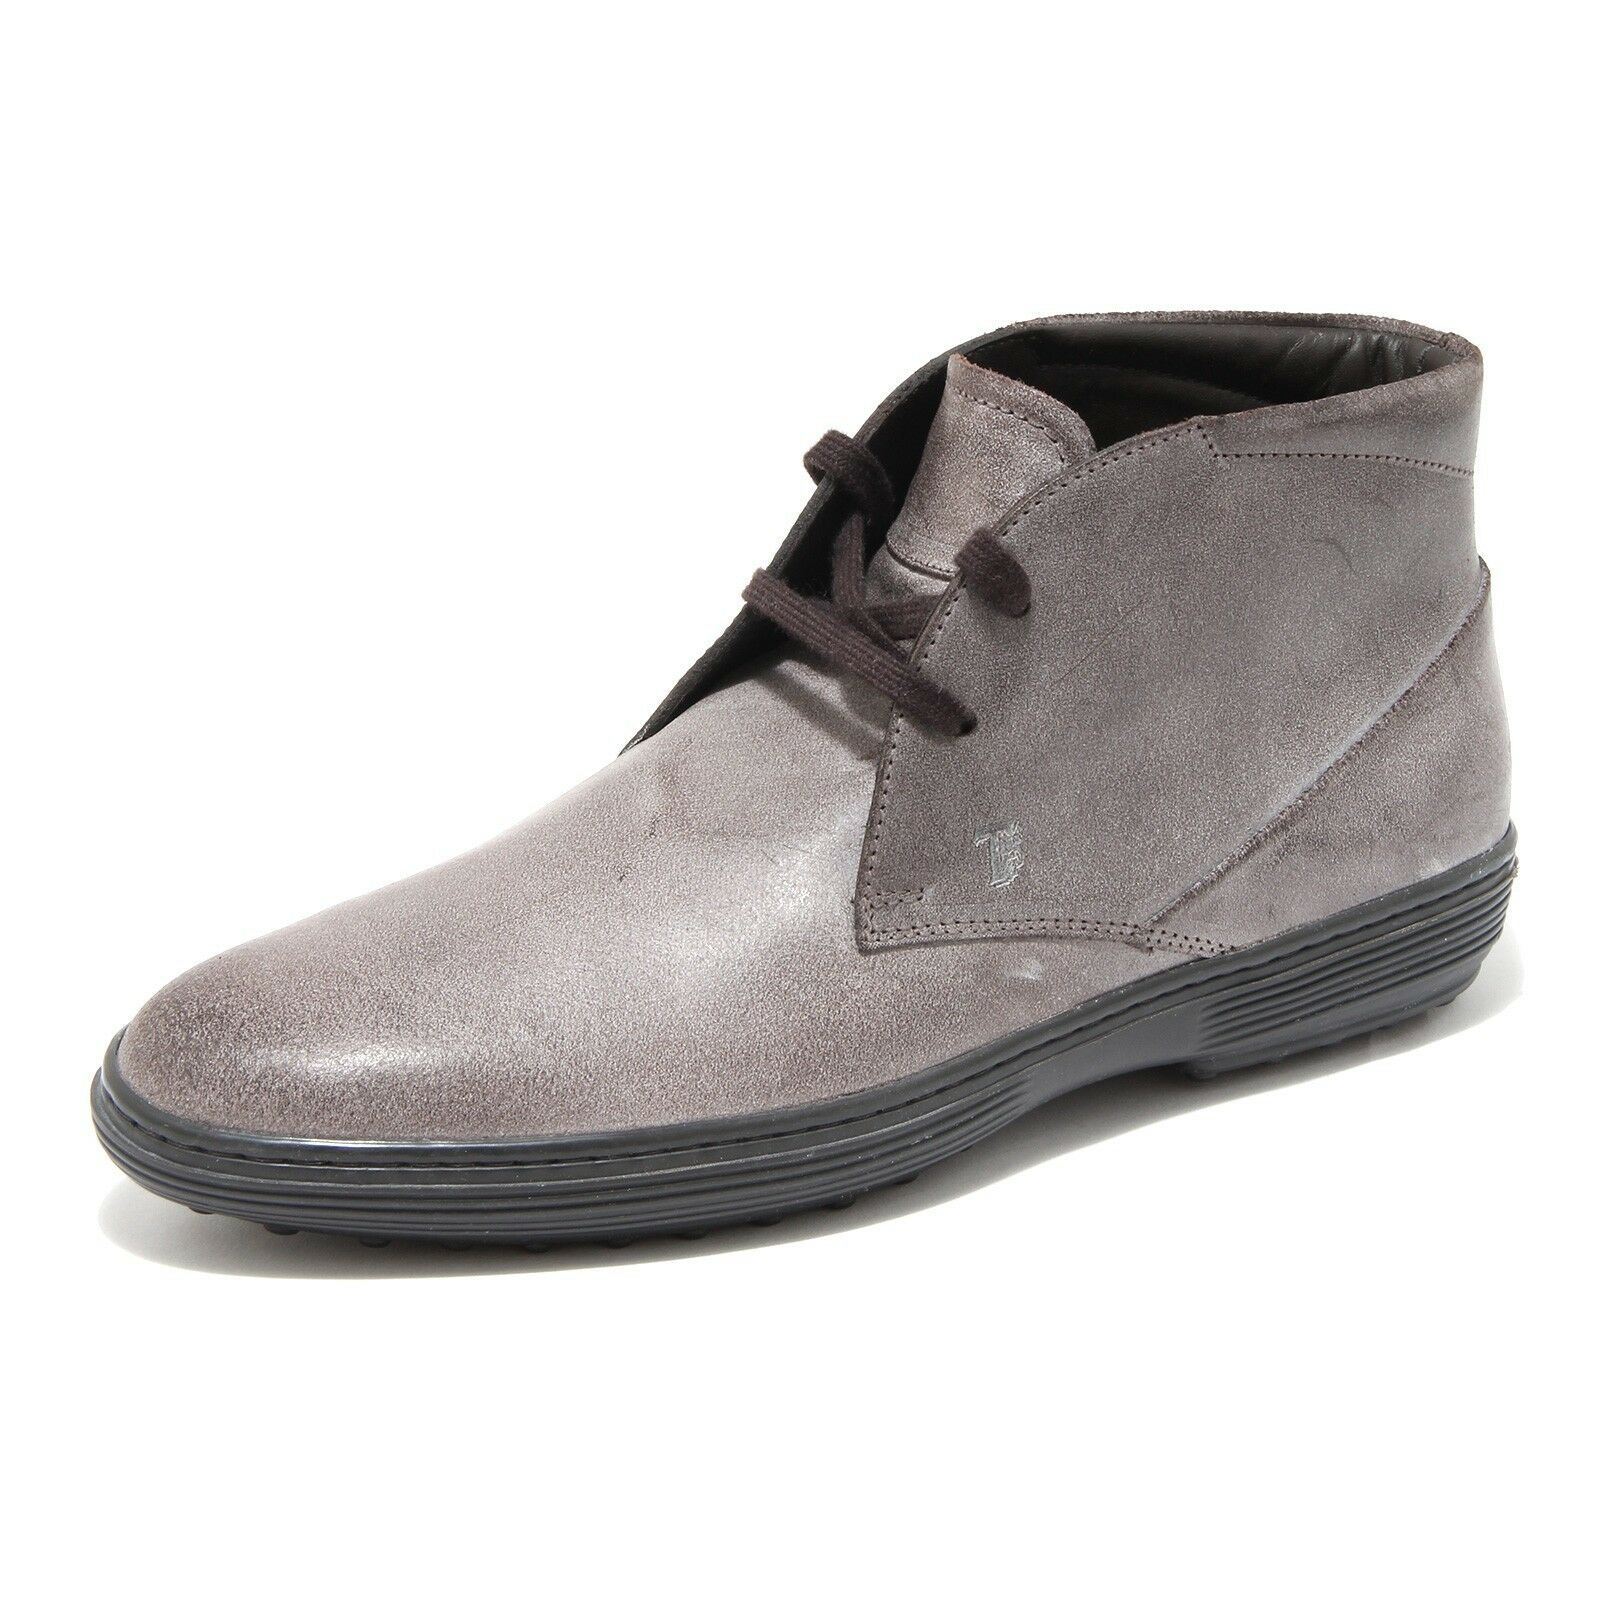 30092 polacchino TOD'S PETER BOOTIE men scarpa uomo shoes men BOOTIE 2858c2